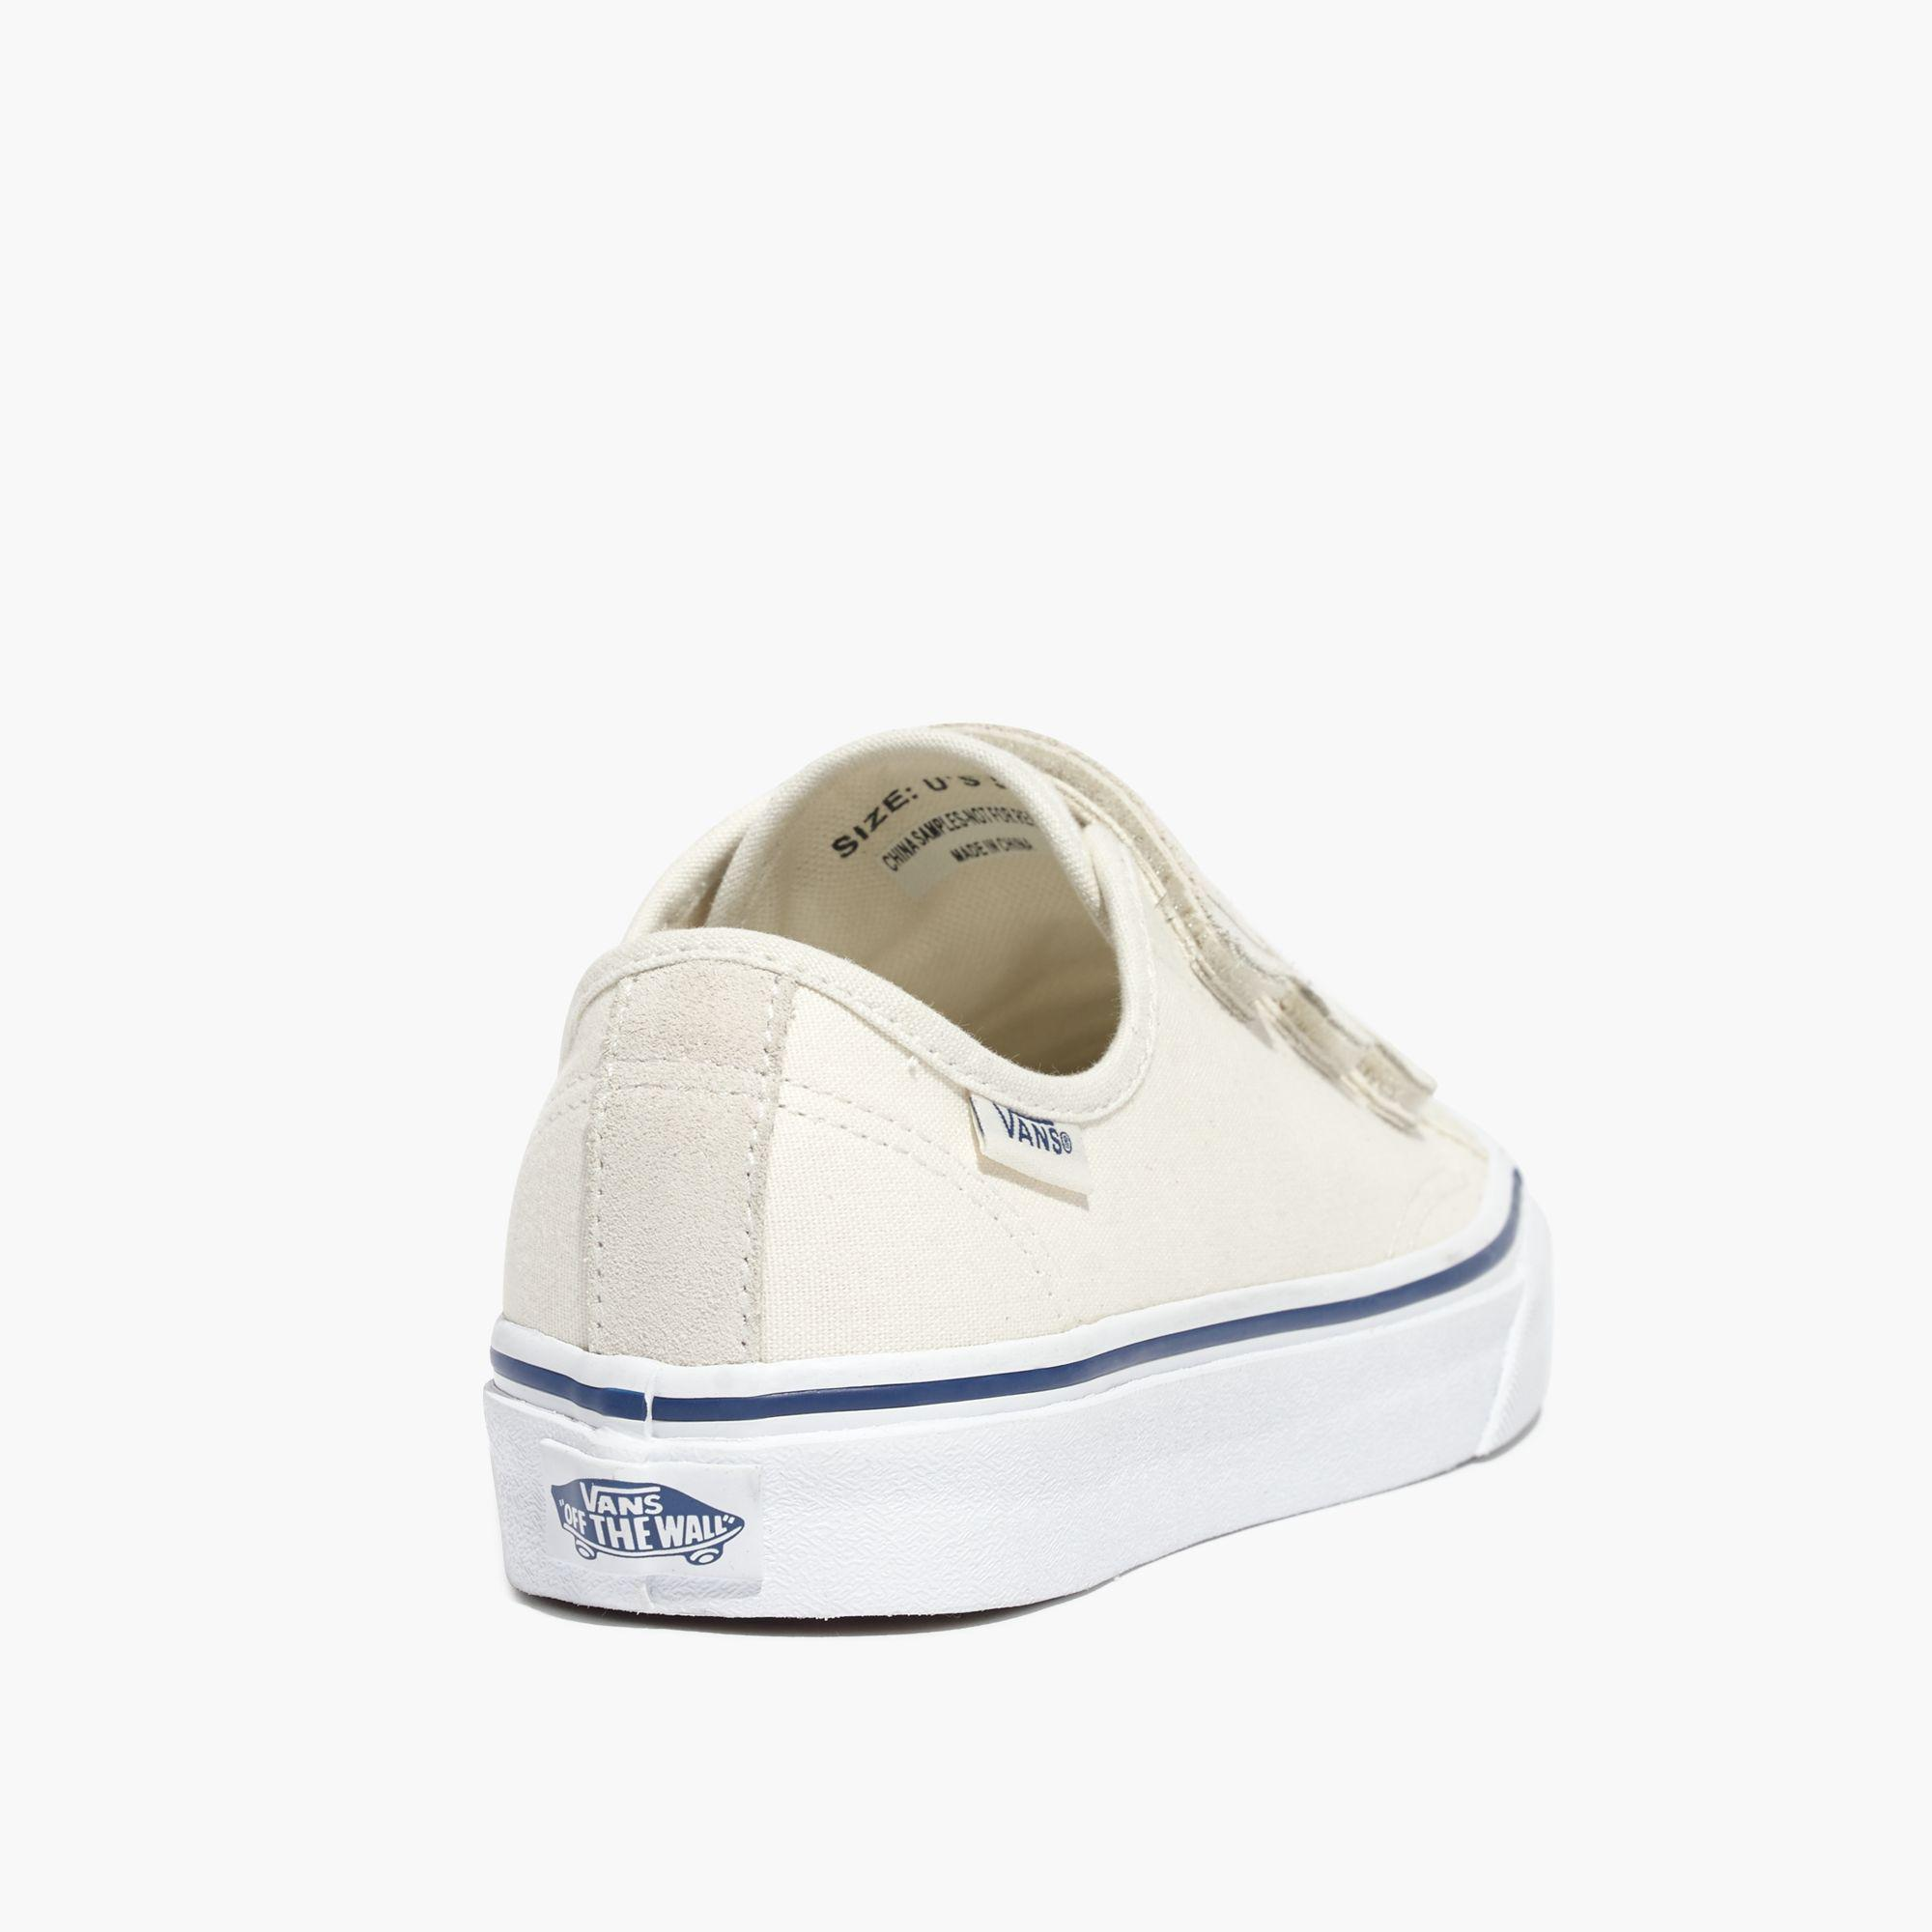 bde2b95c6a5c4 Lyst - Madewell Vans® Unisex Canvas 23v Velcro® Sneakers in White ...